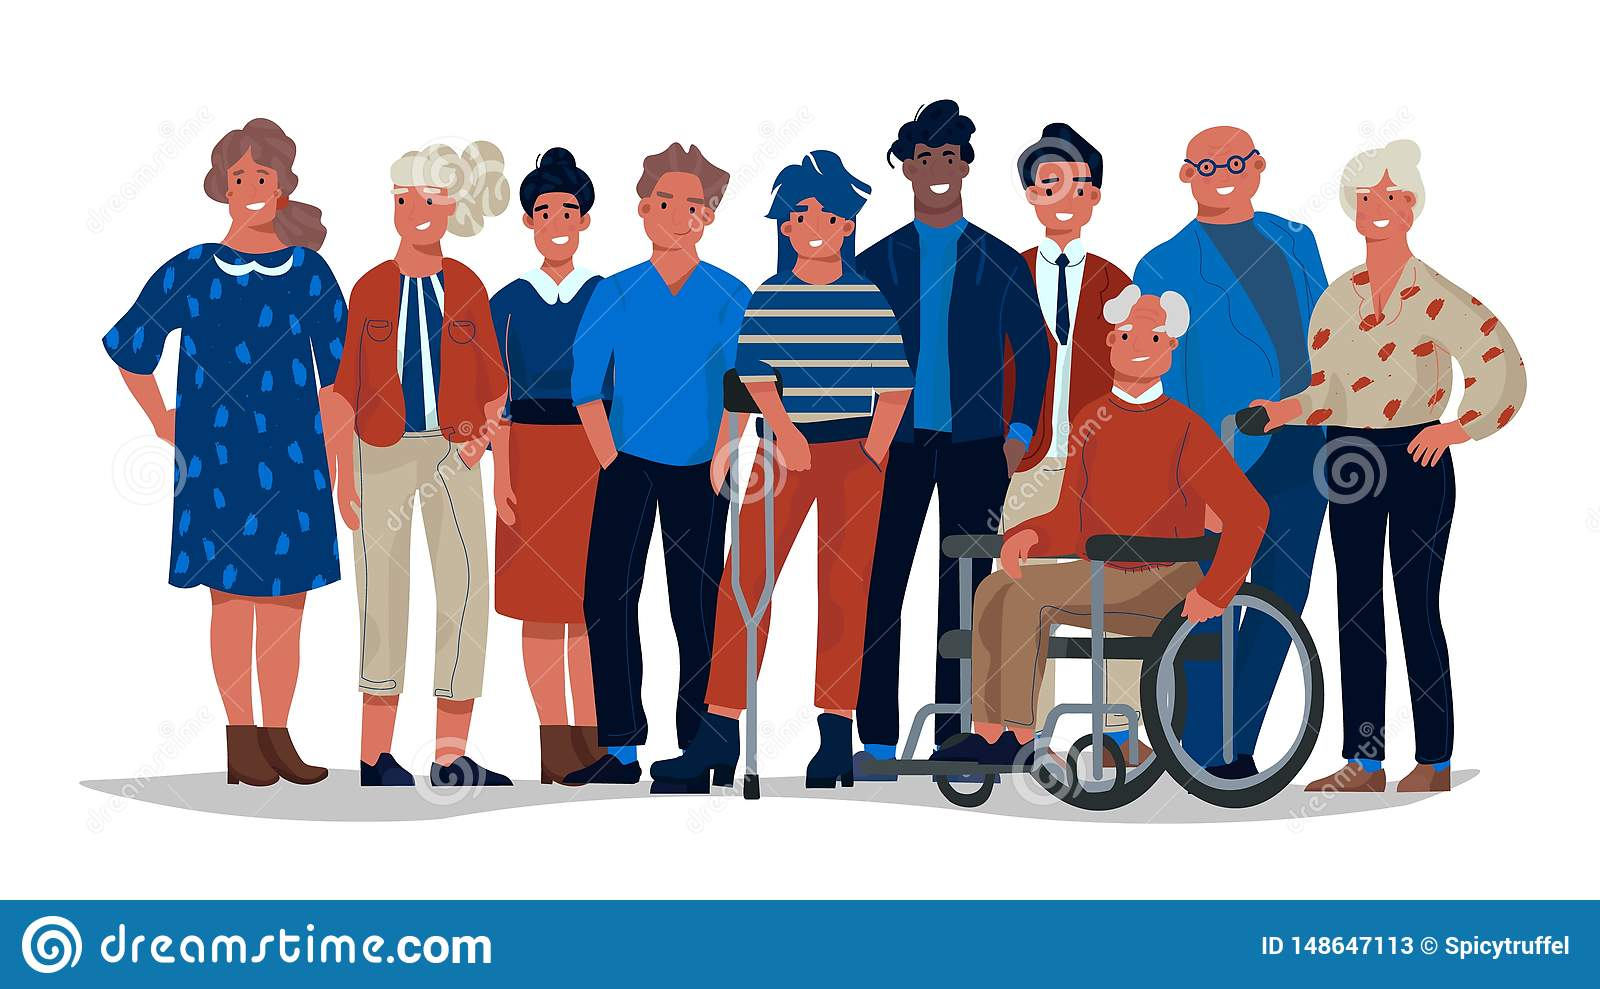 Diverse society people. Group of different multiracial and multicultural people standing together. Vector casual men and